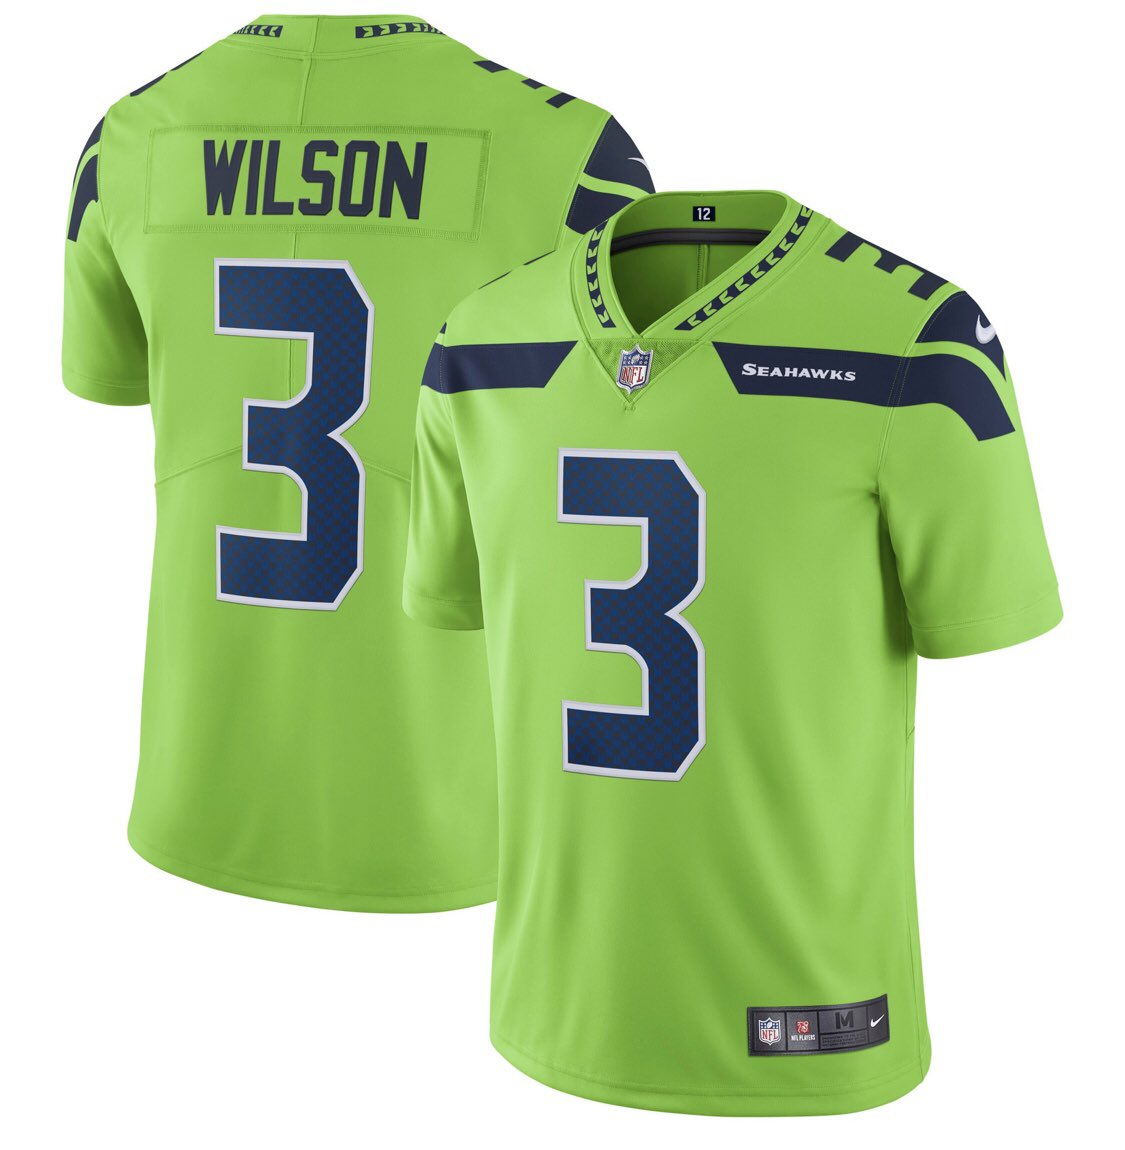 7230fcf7be1 Grab your Green Seahawks gear here  http   shrsl.com 1bs70  uniswag pic.twitter.com G4ulXRElF0